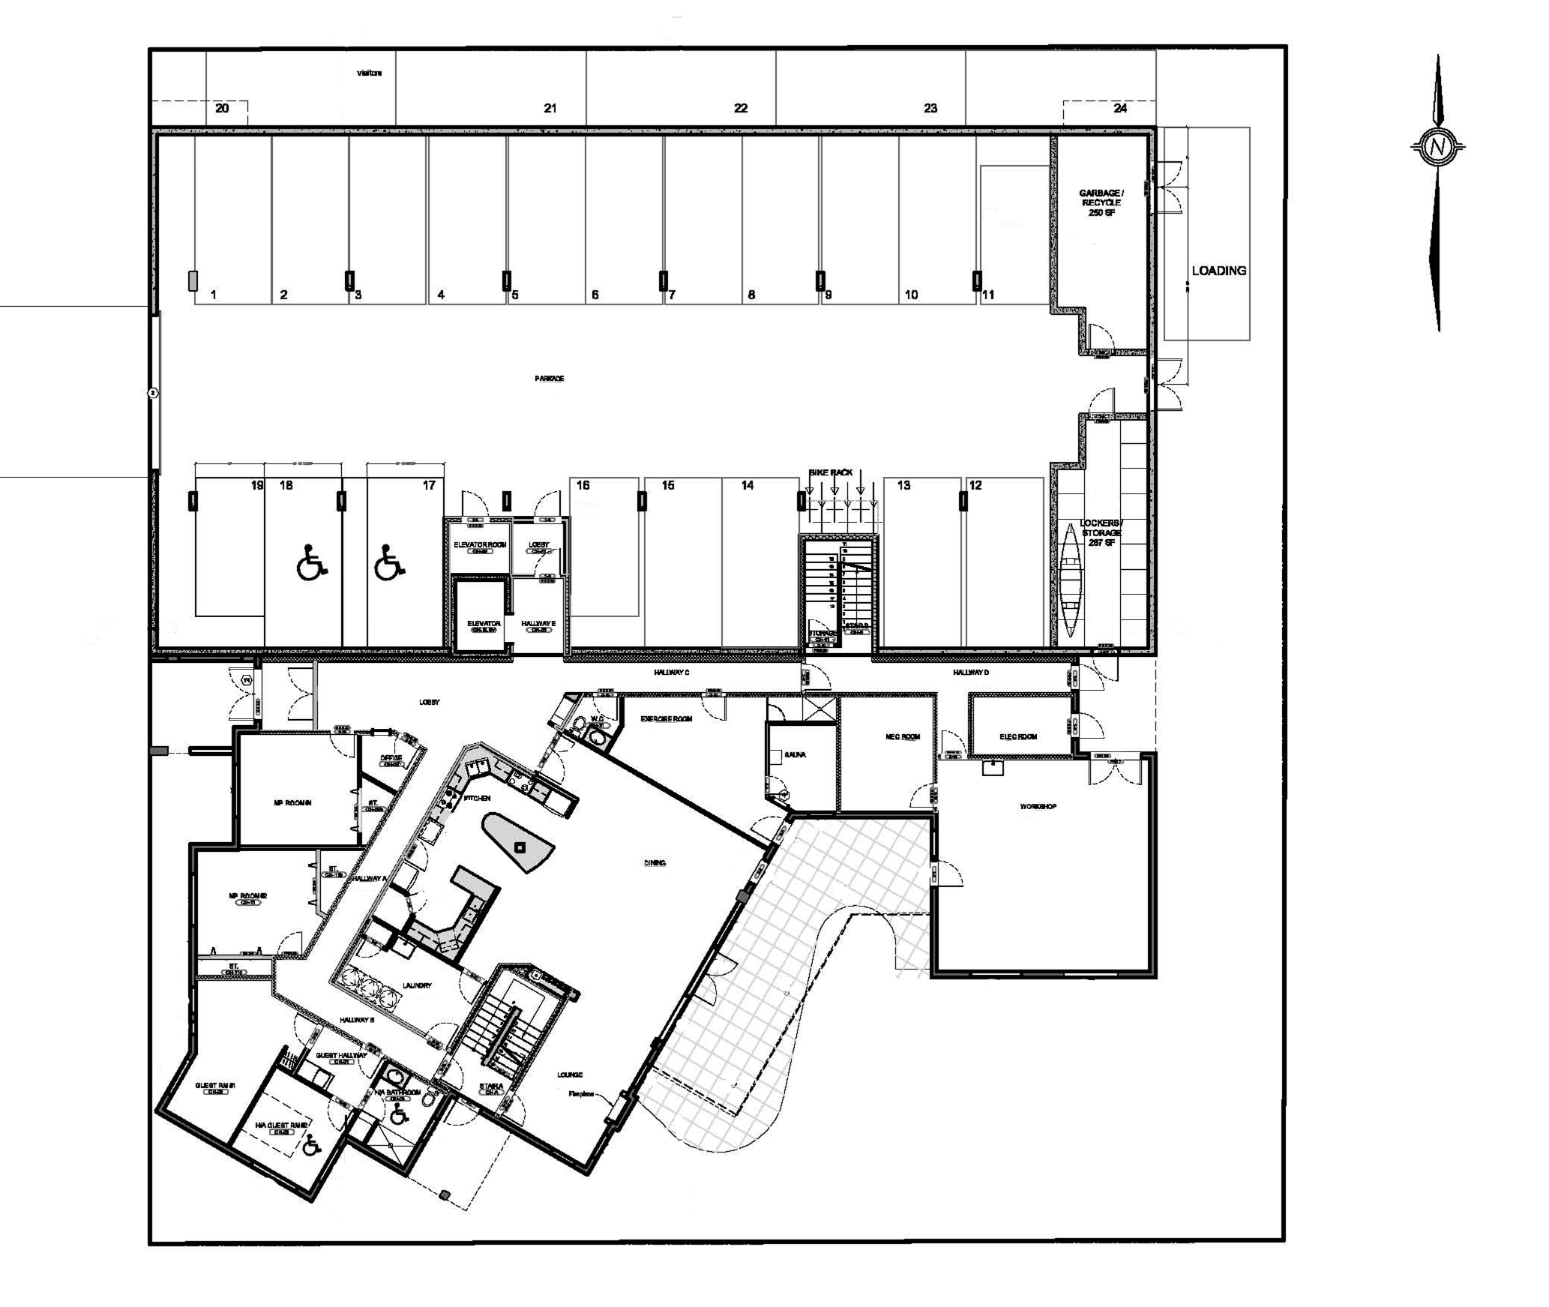 Sauna building plans pictures to pin on pinterest pinsdaddy for Sauna layouts floor plans